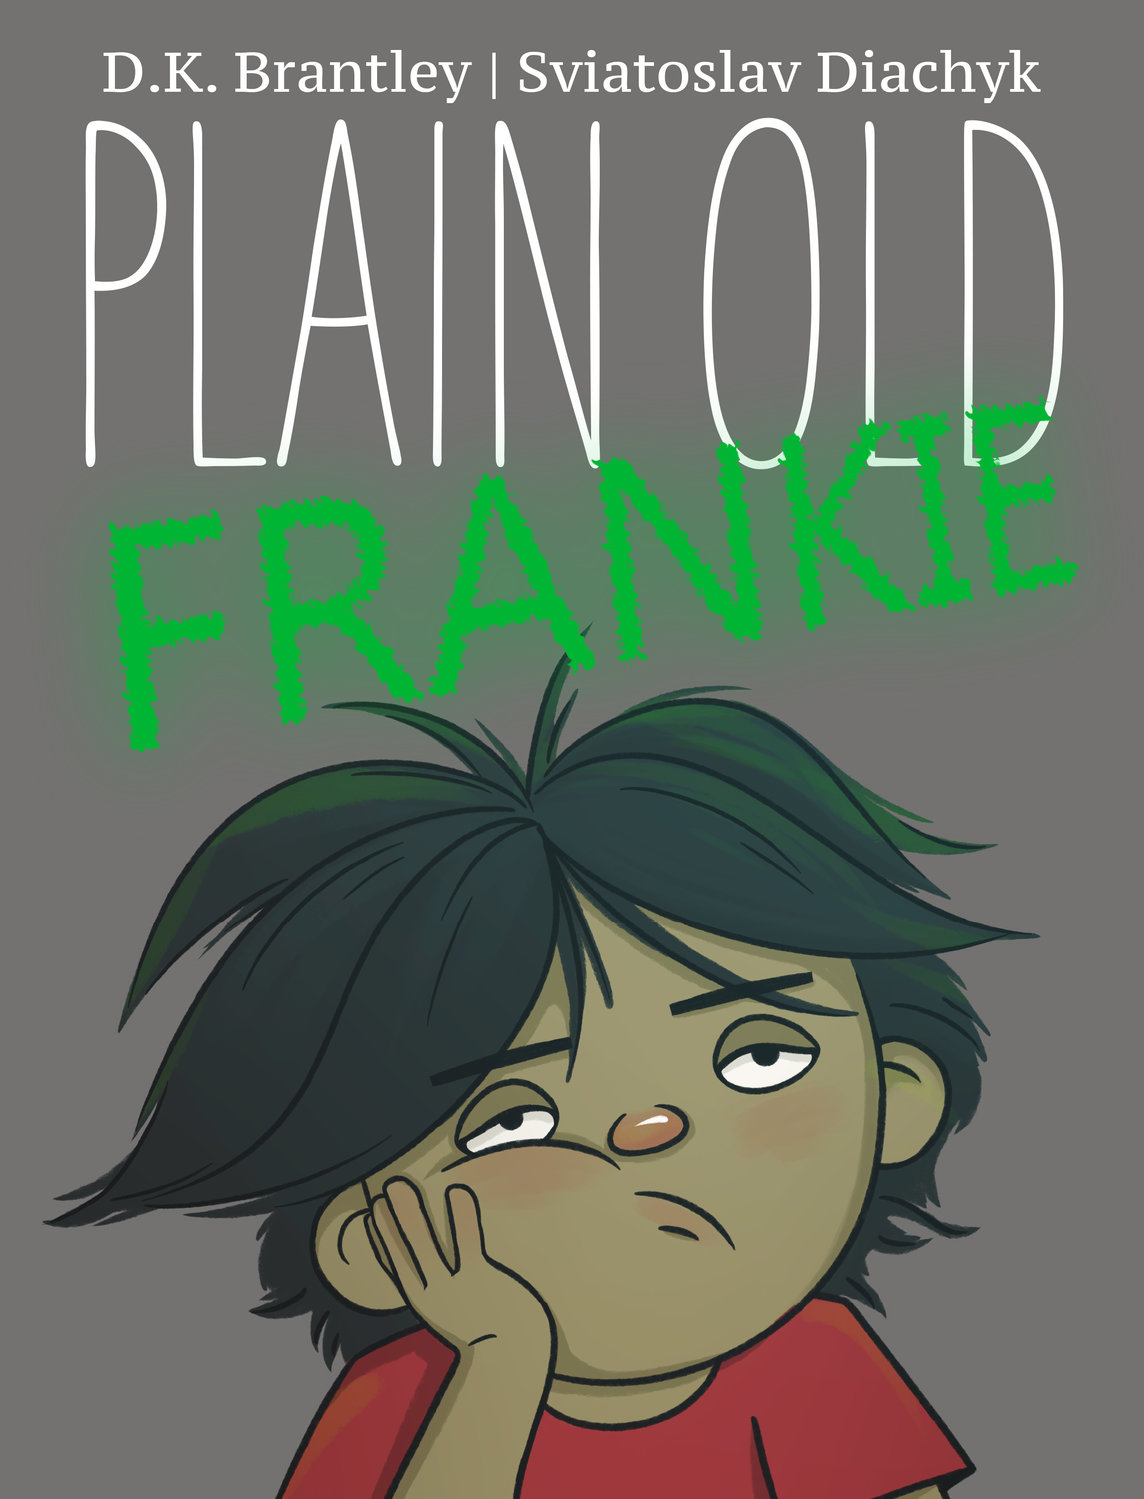 Frankie, the son of two classic movie monsters, dreams of being anyone or anything other than plain old Frankie. But is he really all that plain?